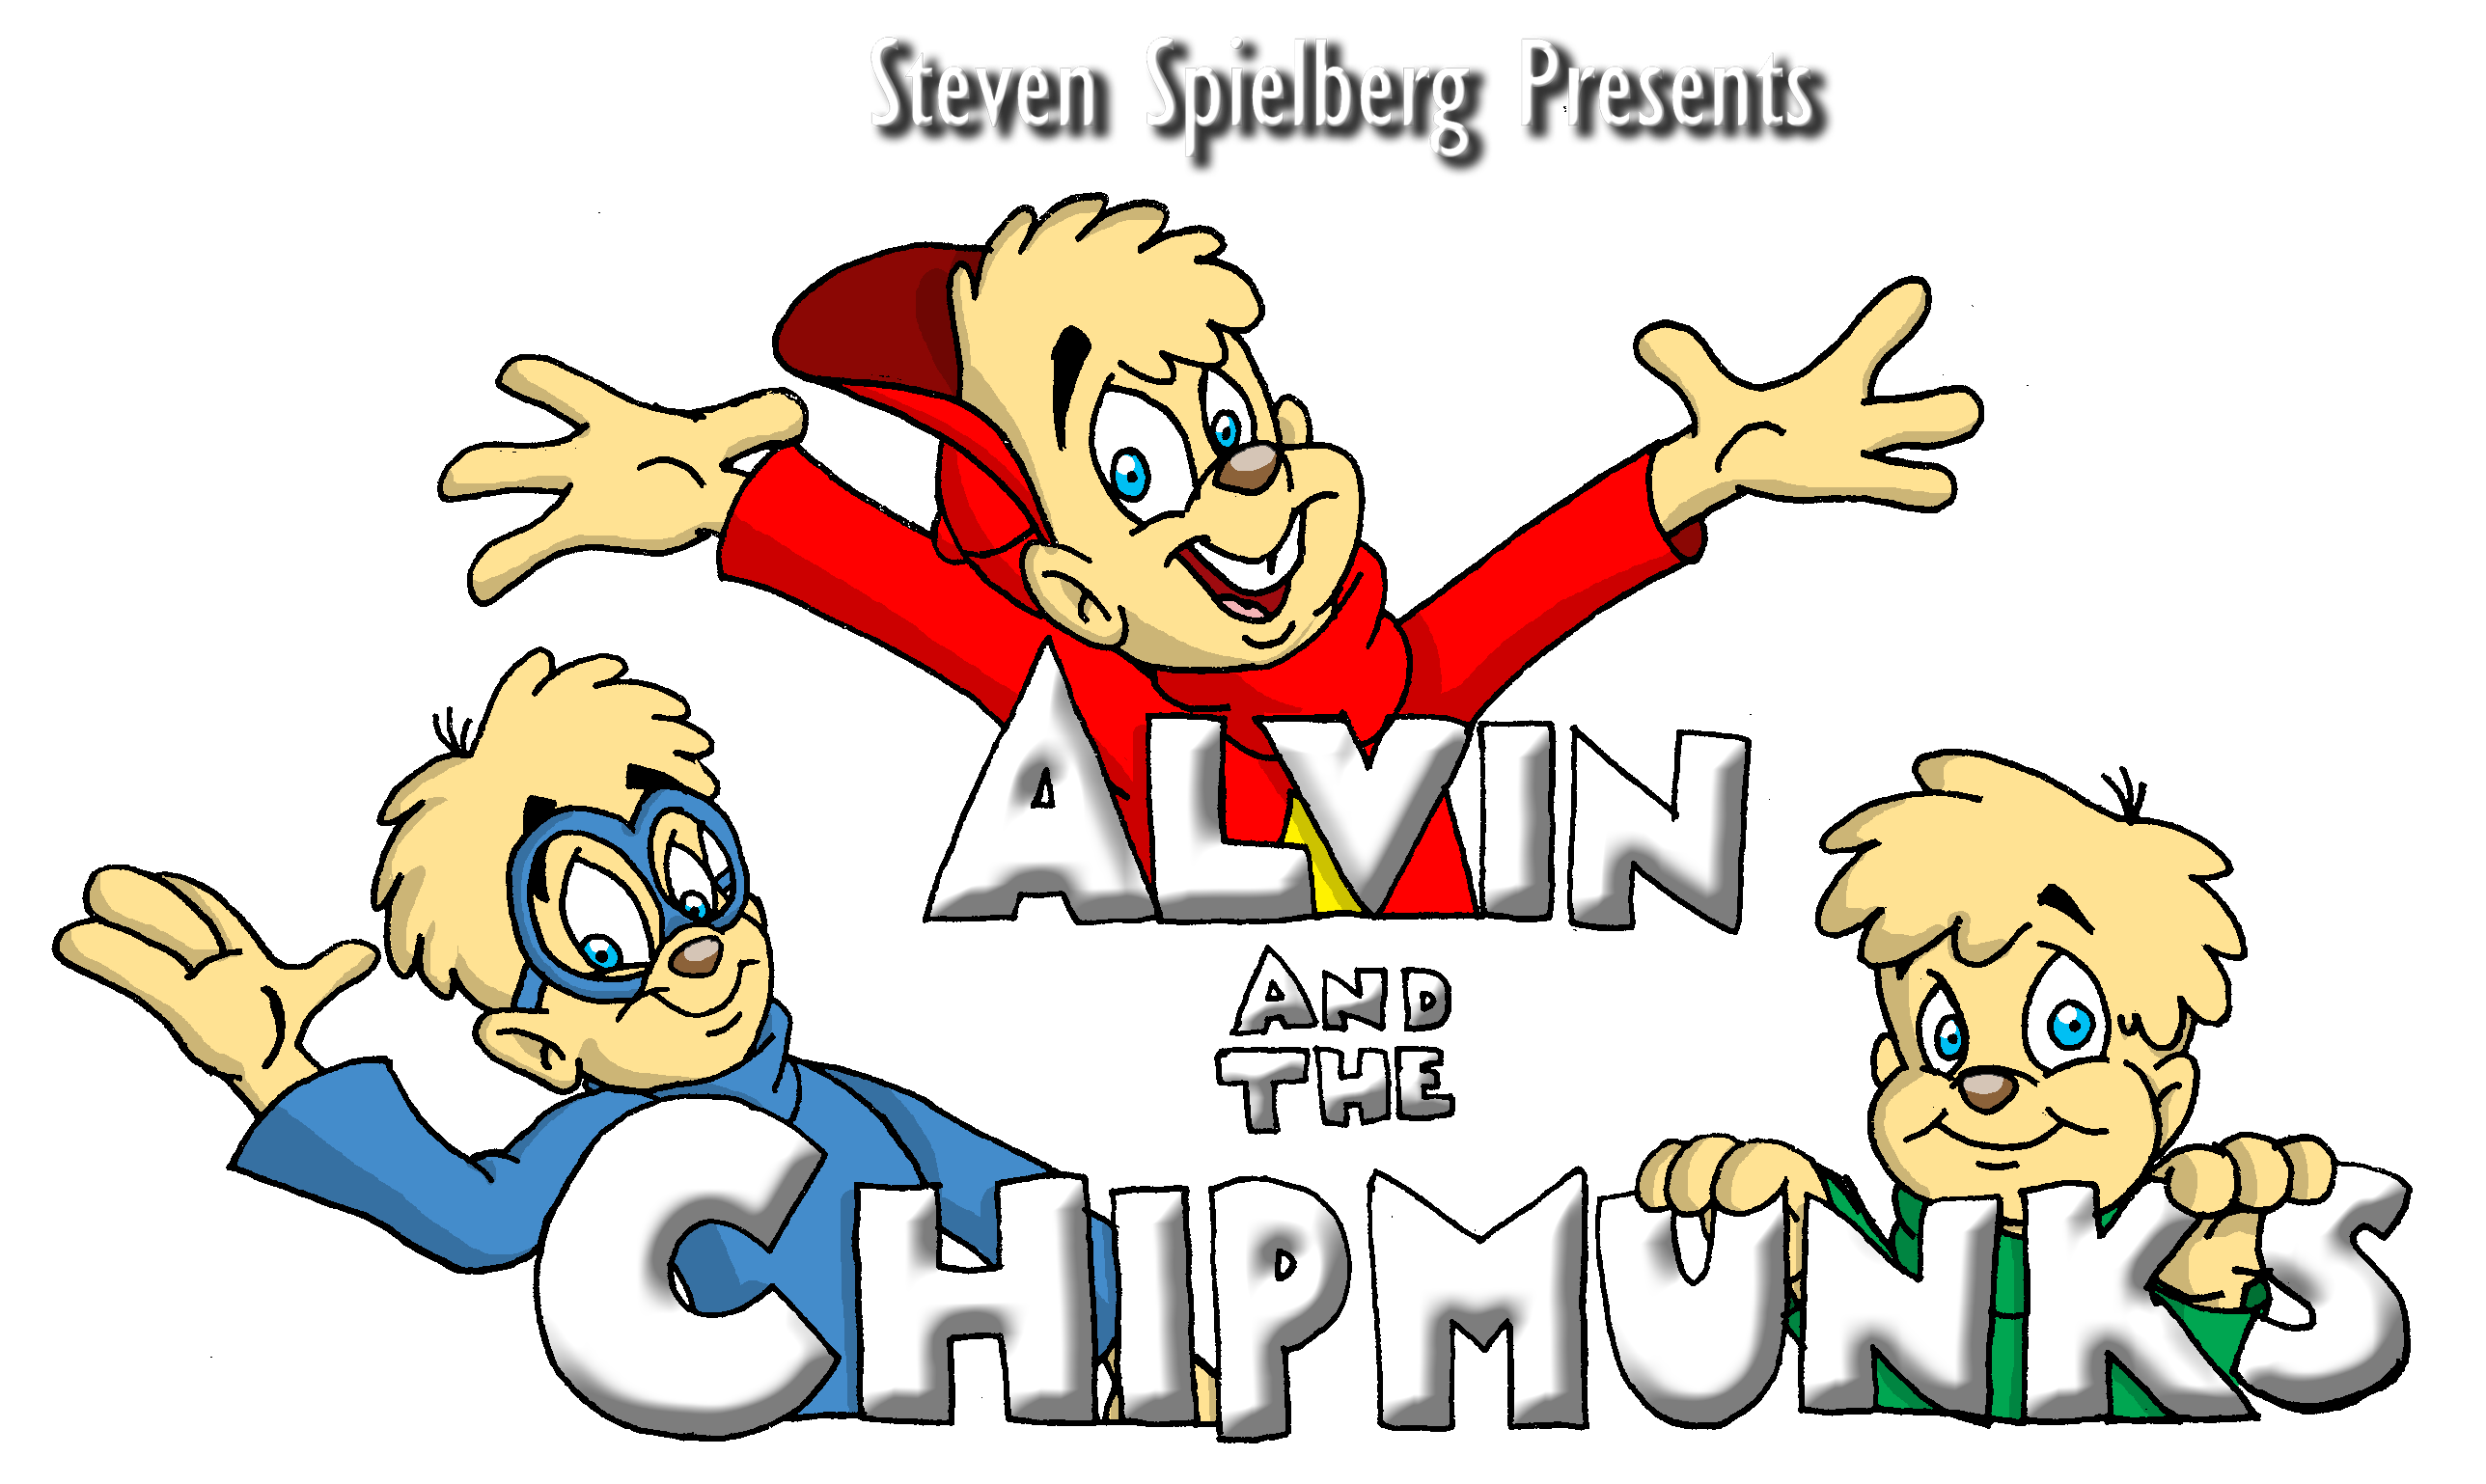 Alvin and the Chipmunks (1990s TV series)